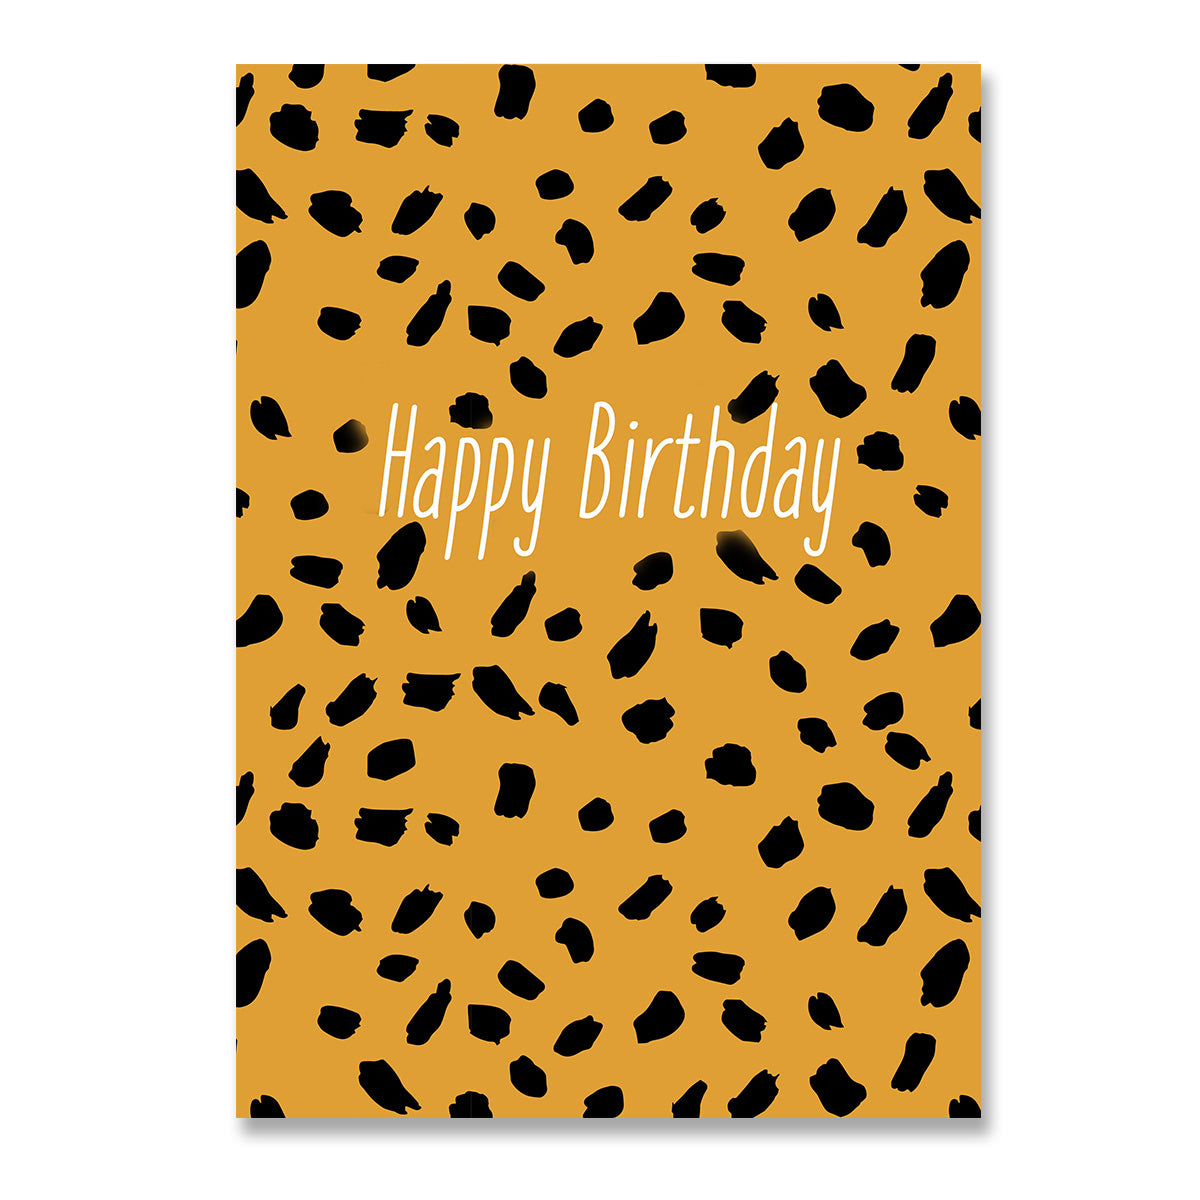 Happy Birthday Tiger Card-Greeting Cards-Mode Prints